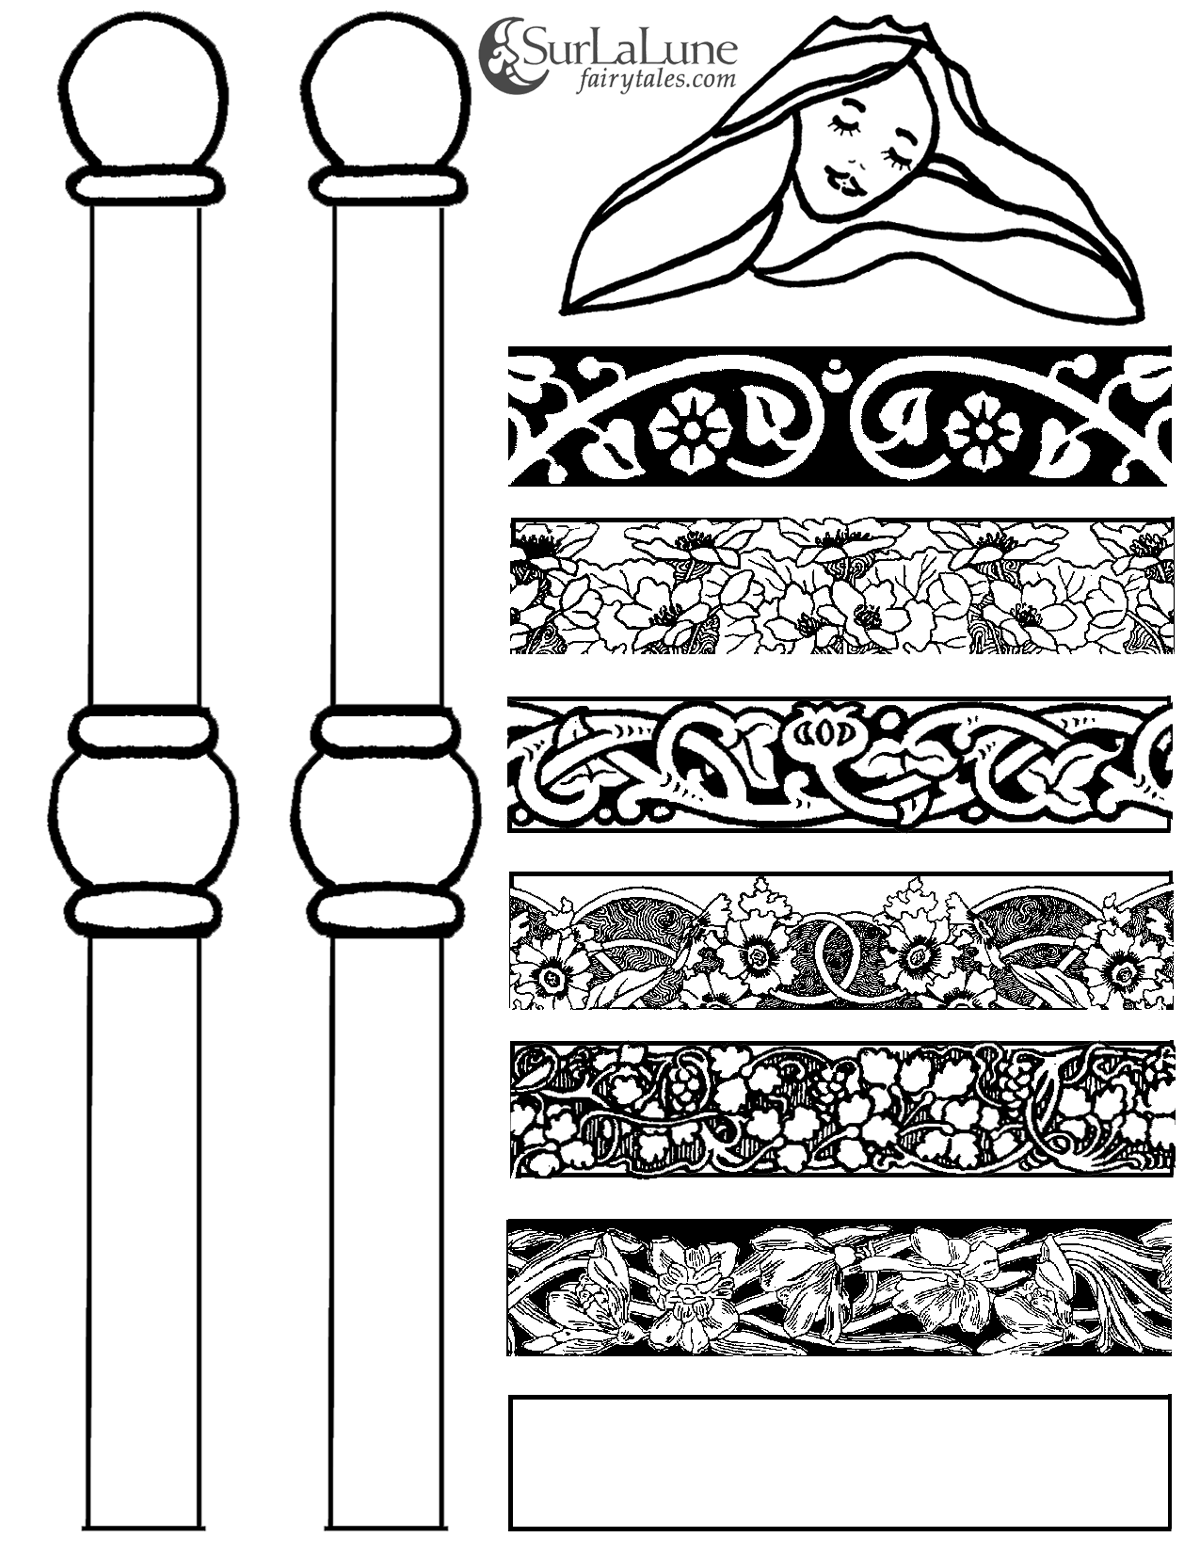 Bed clipart princess and the pea And Tales Princess and SurLaLune